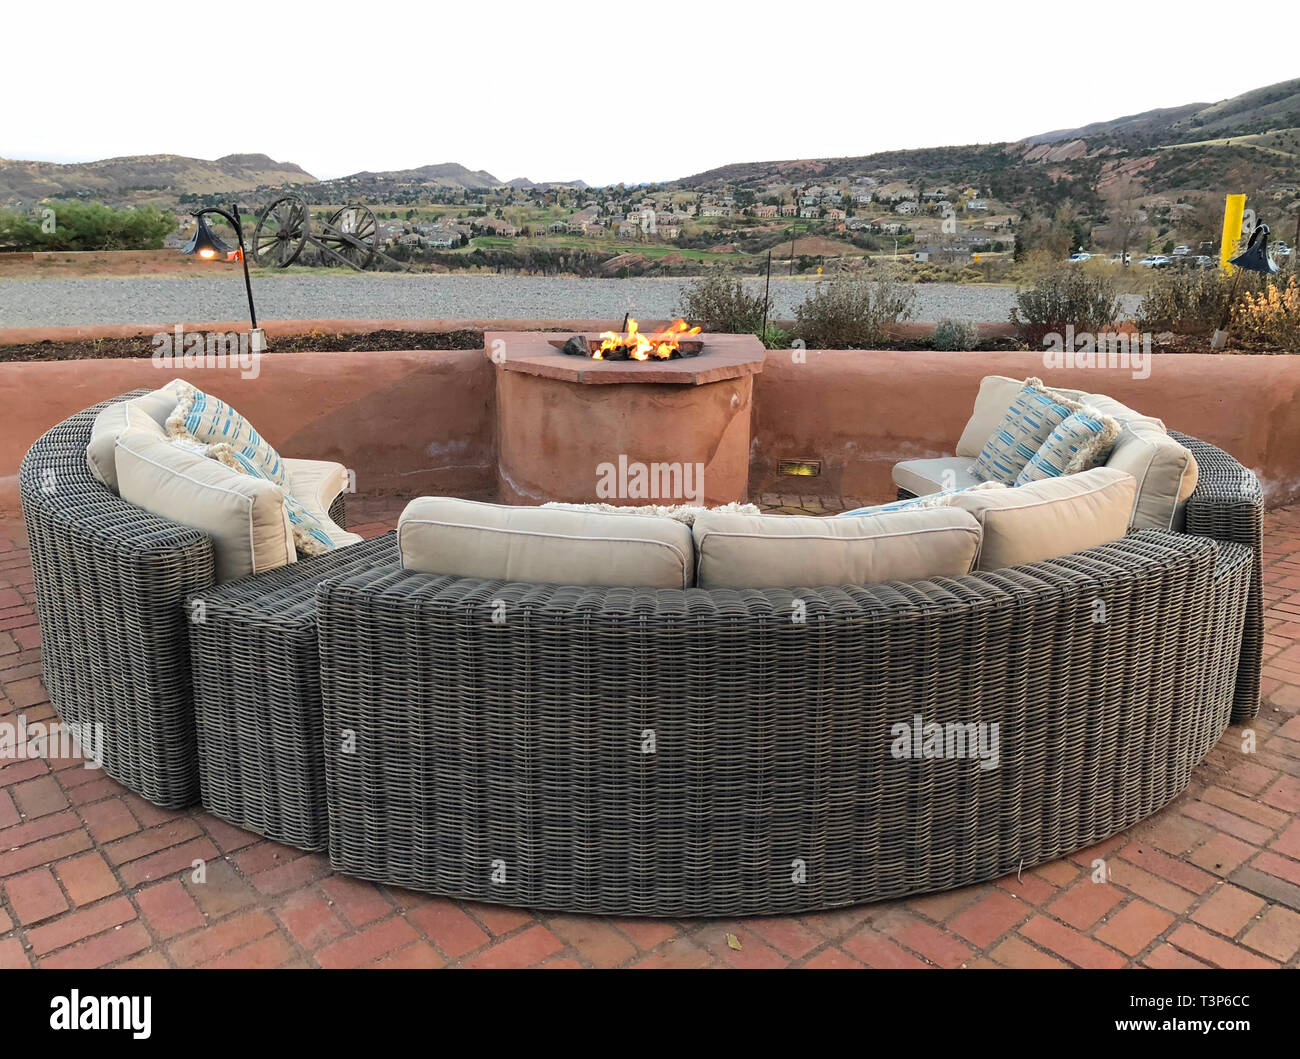 Outdoor Fire Pit With Circular Wicker Seating And Cushions The Photo Was Taken In The Early Evening When The Sky Had A Soft Pink And Orange Color On Stock Photo Alamy